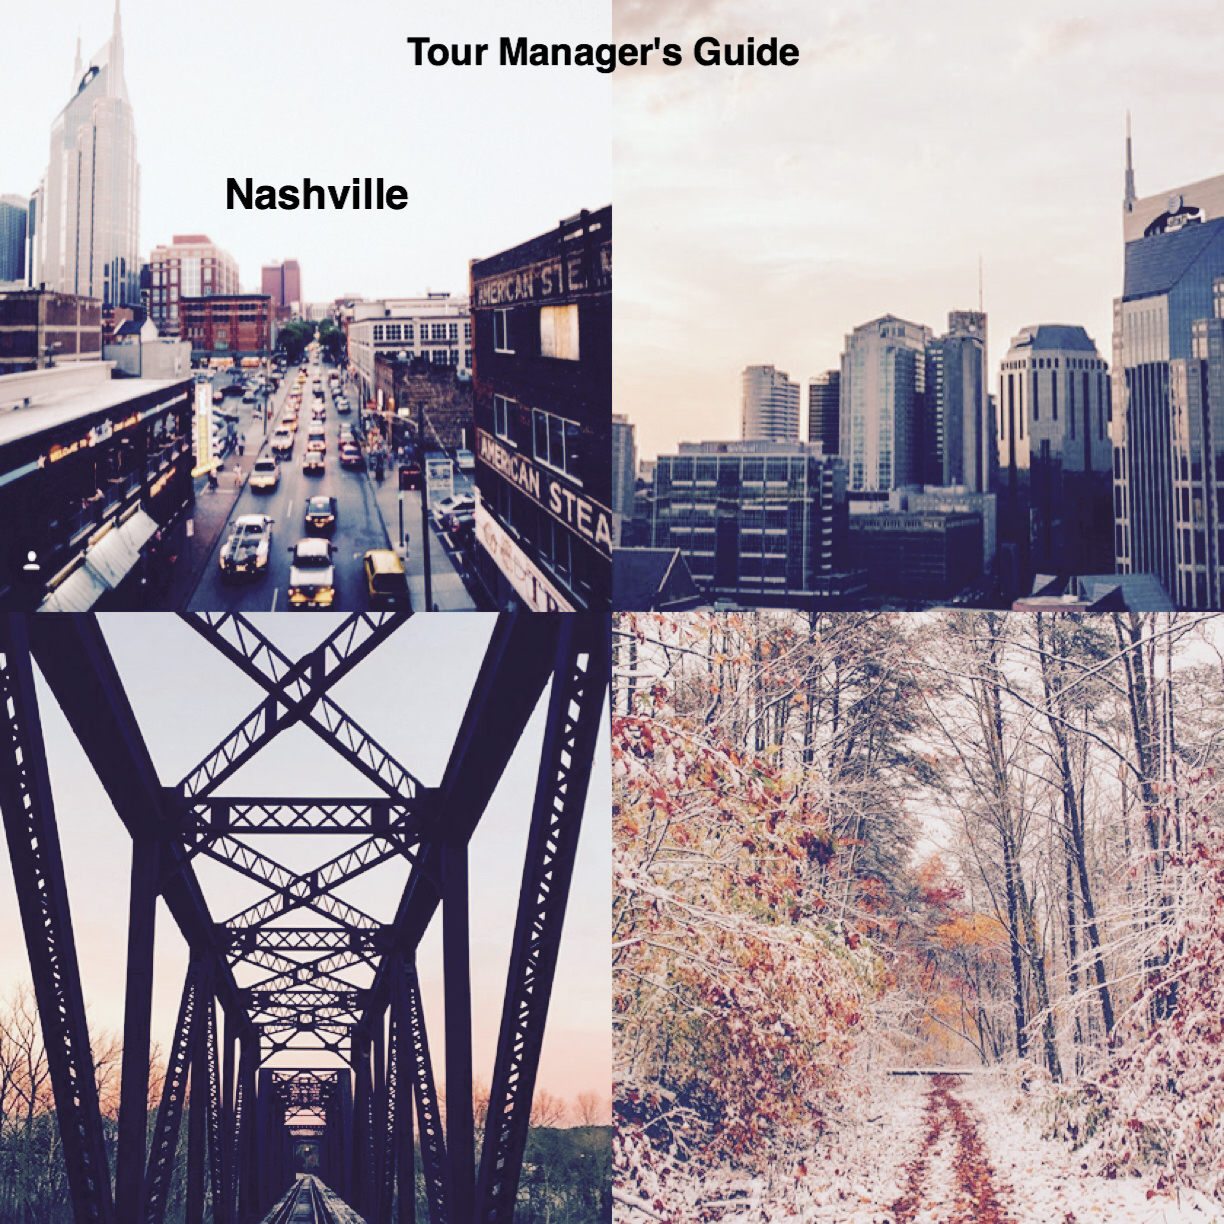 Nashville TM Guide